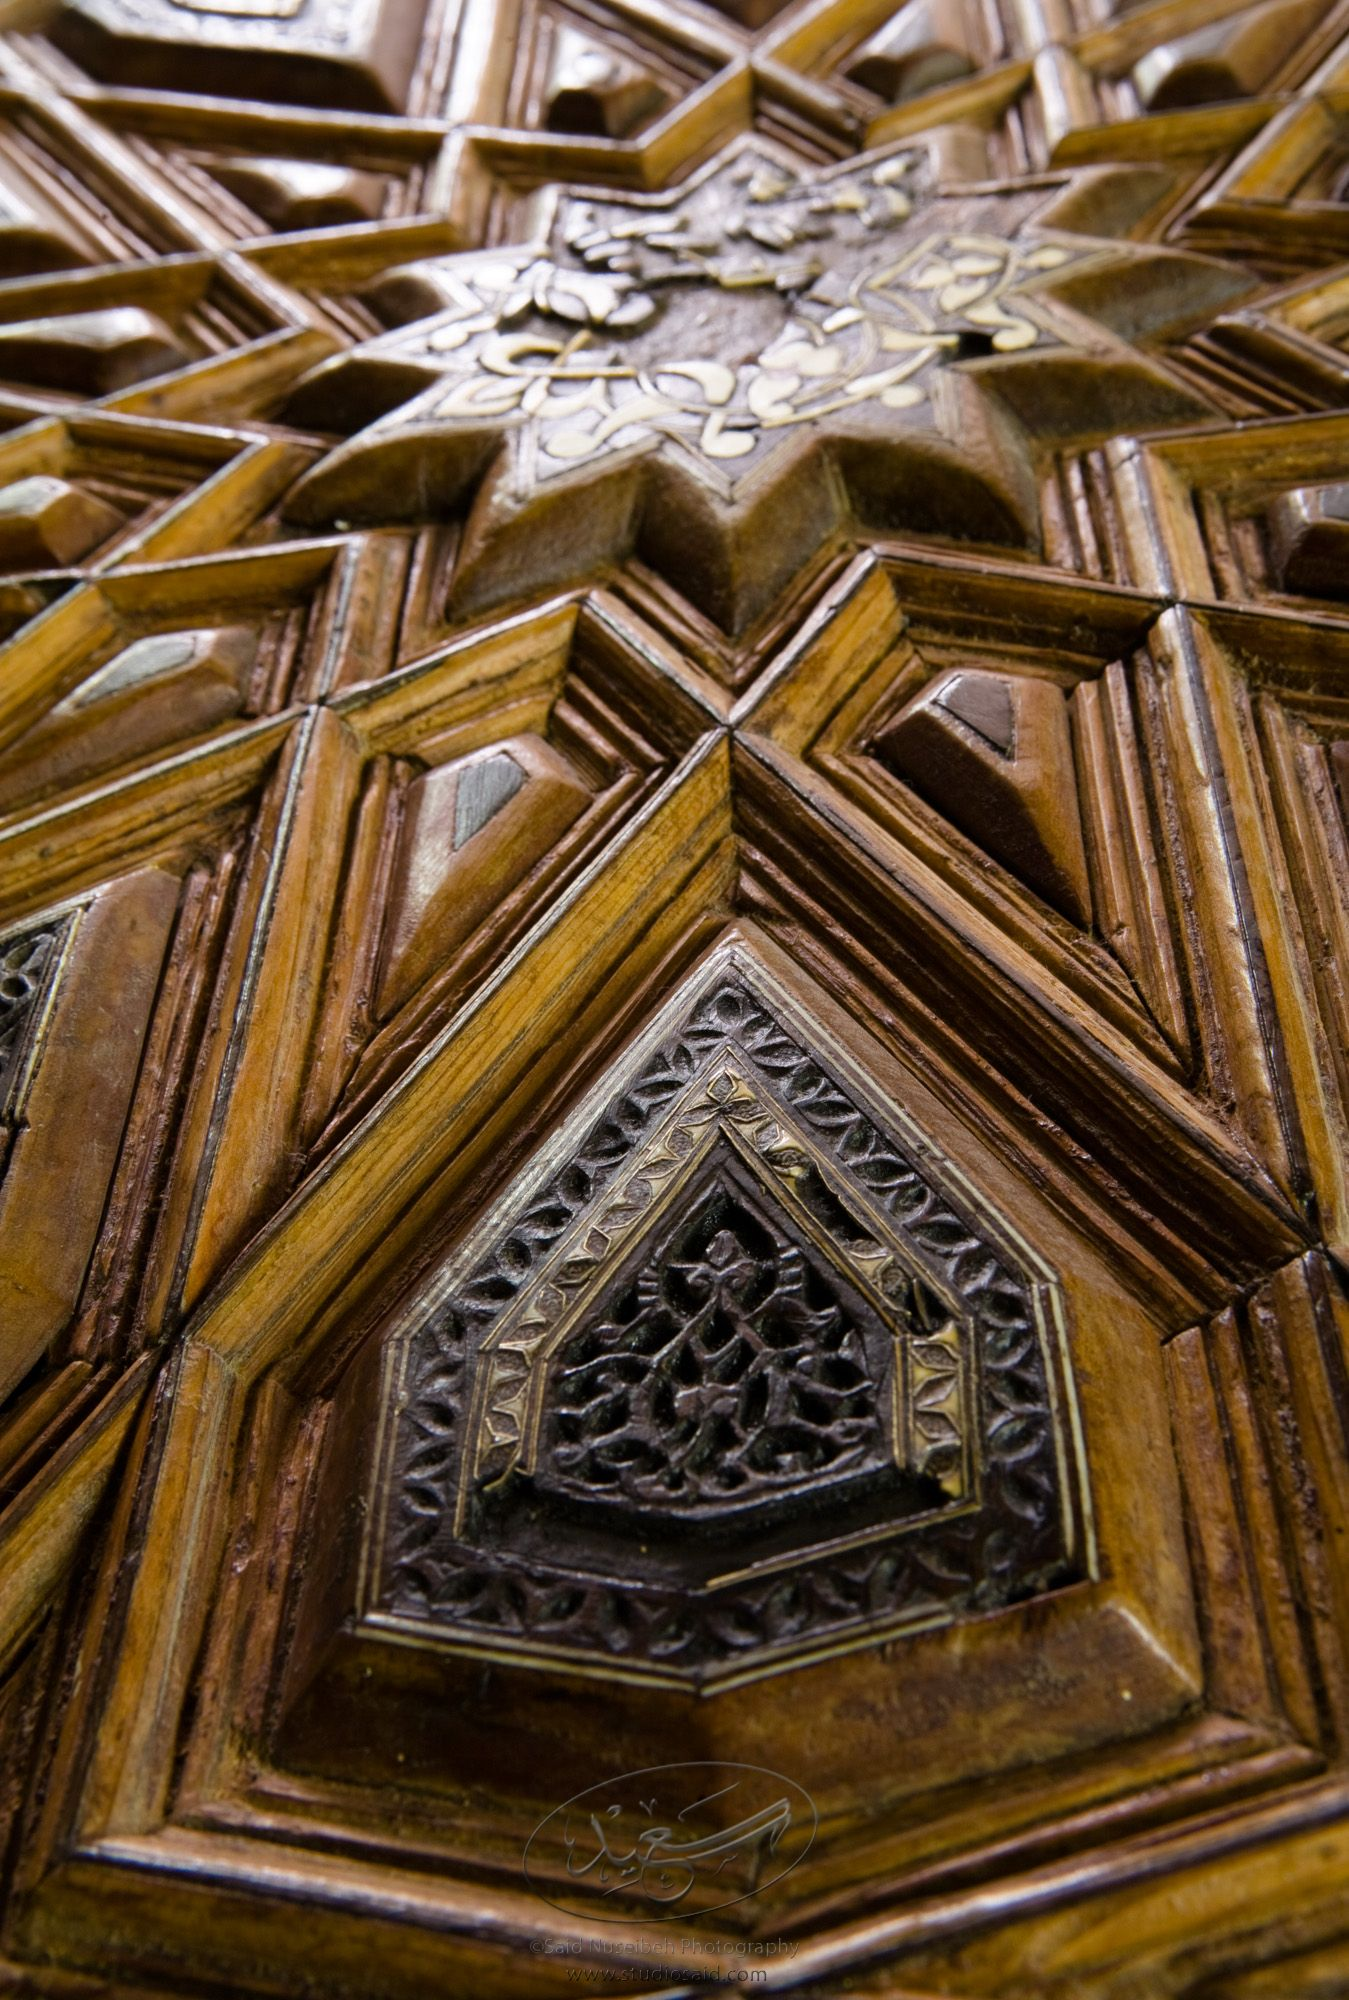 """Broken Star and Interlace Lozenge. Minbar, Carved Woodwork and Inlay Detail""The late-13th / early-14th c. Mamluk minbar, or pulpit, of Sultan al-Nasir Muhammad, the ninth Mamluk Sultan from Cairo and son of Qalawun. The minbar was located in the Umayyad Mosque in Aleppo, Haleb, prior to its damage and disappearance in May 2013."